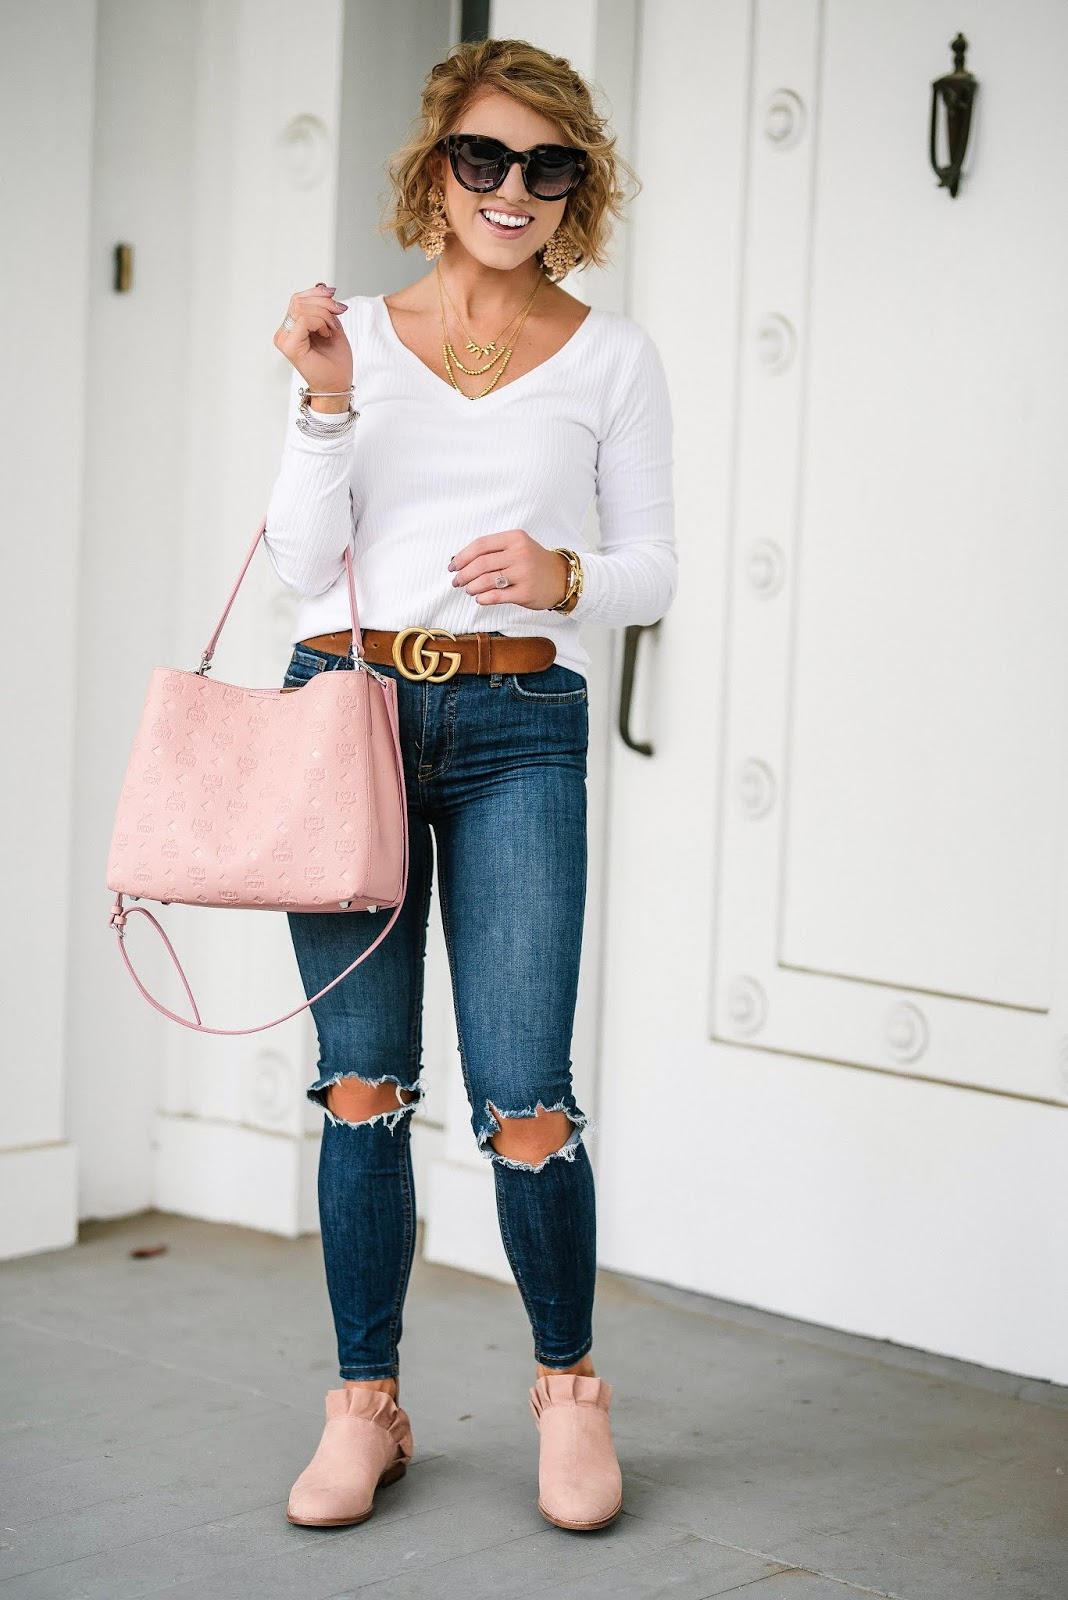 Easy Everyday Look + Under $100 Ruffle Booties - Something Delightful Blog @racheltimmerman